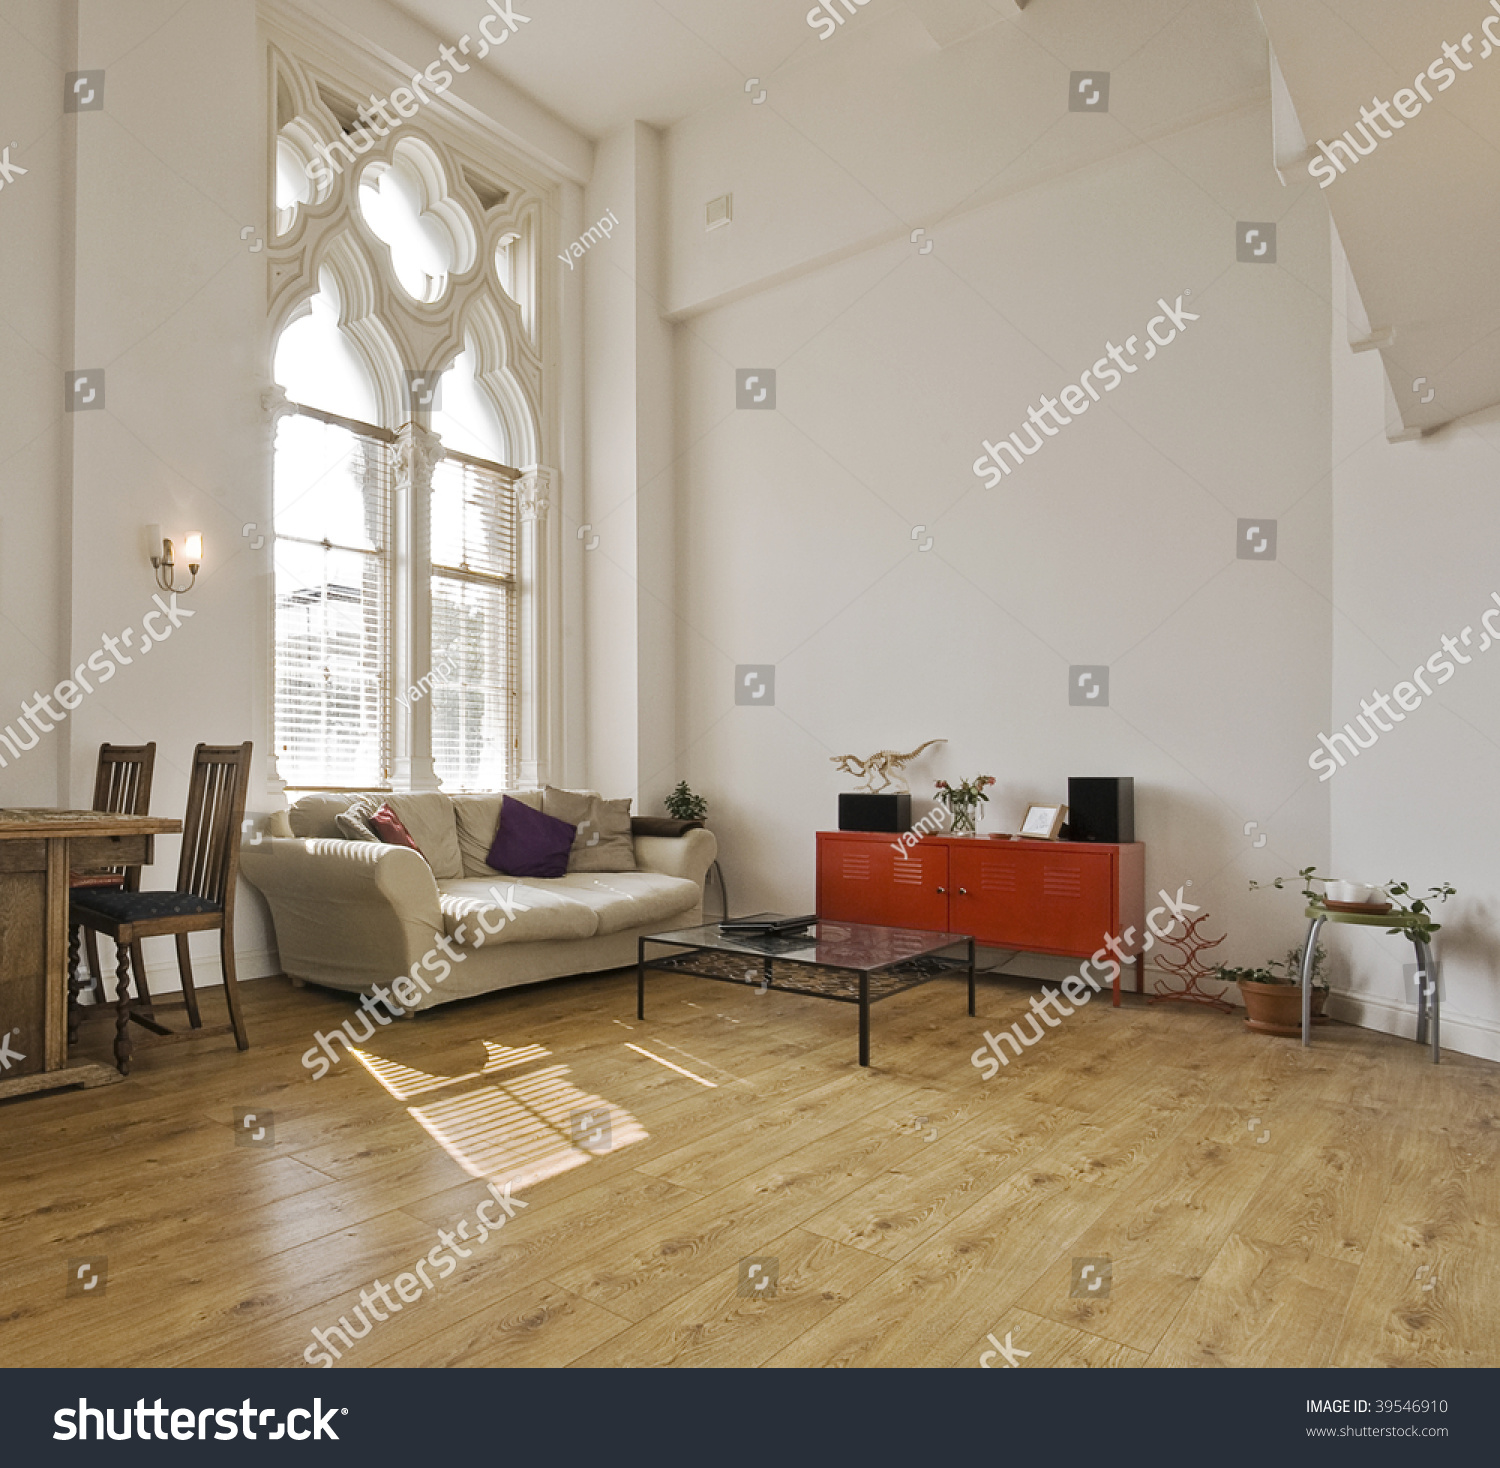 high ceiling apartment with large gothic windows stock photo 39546910